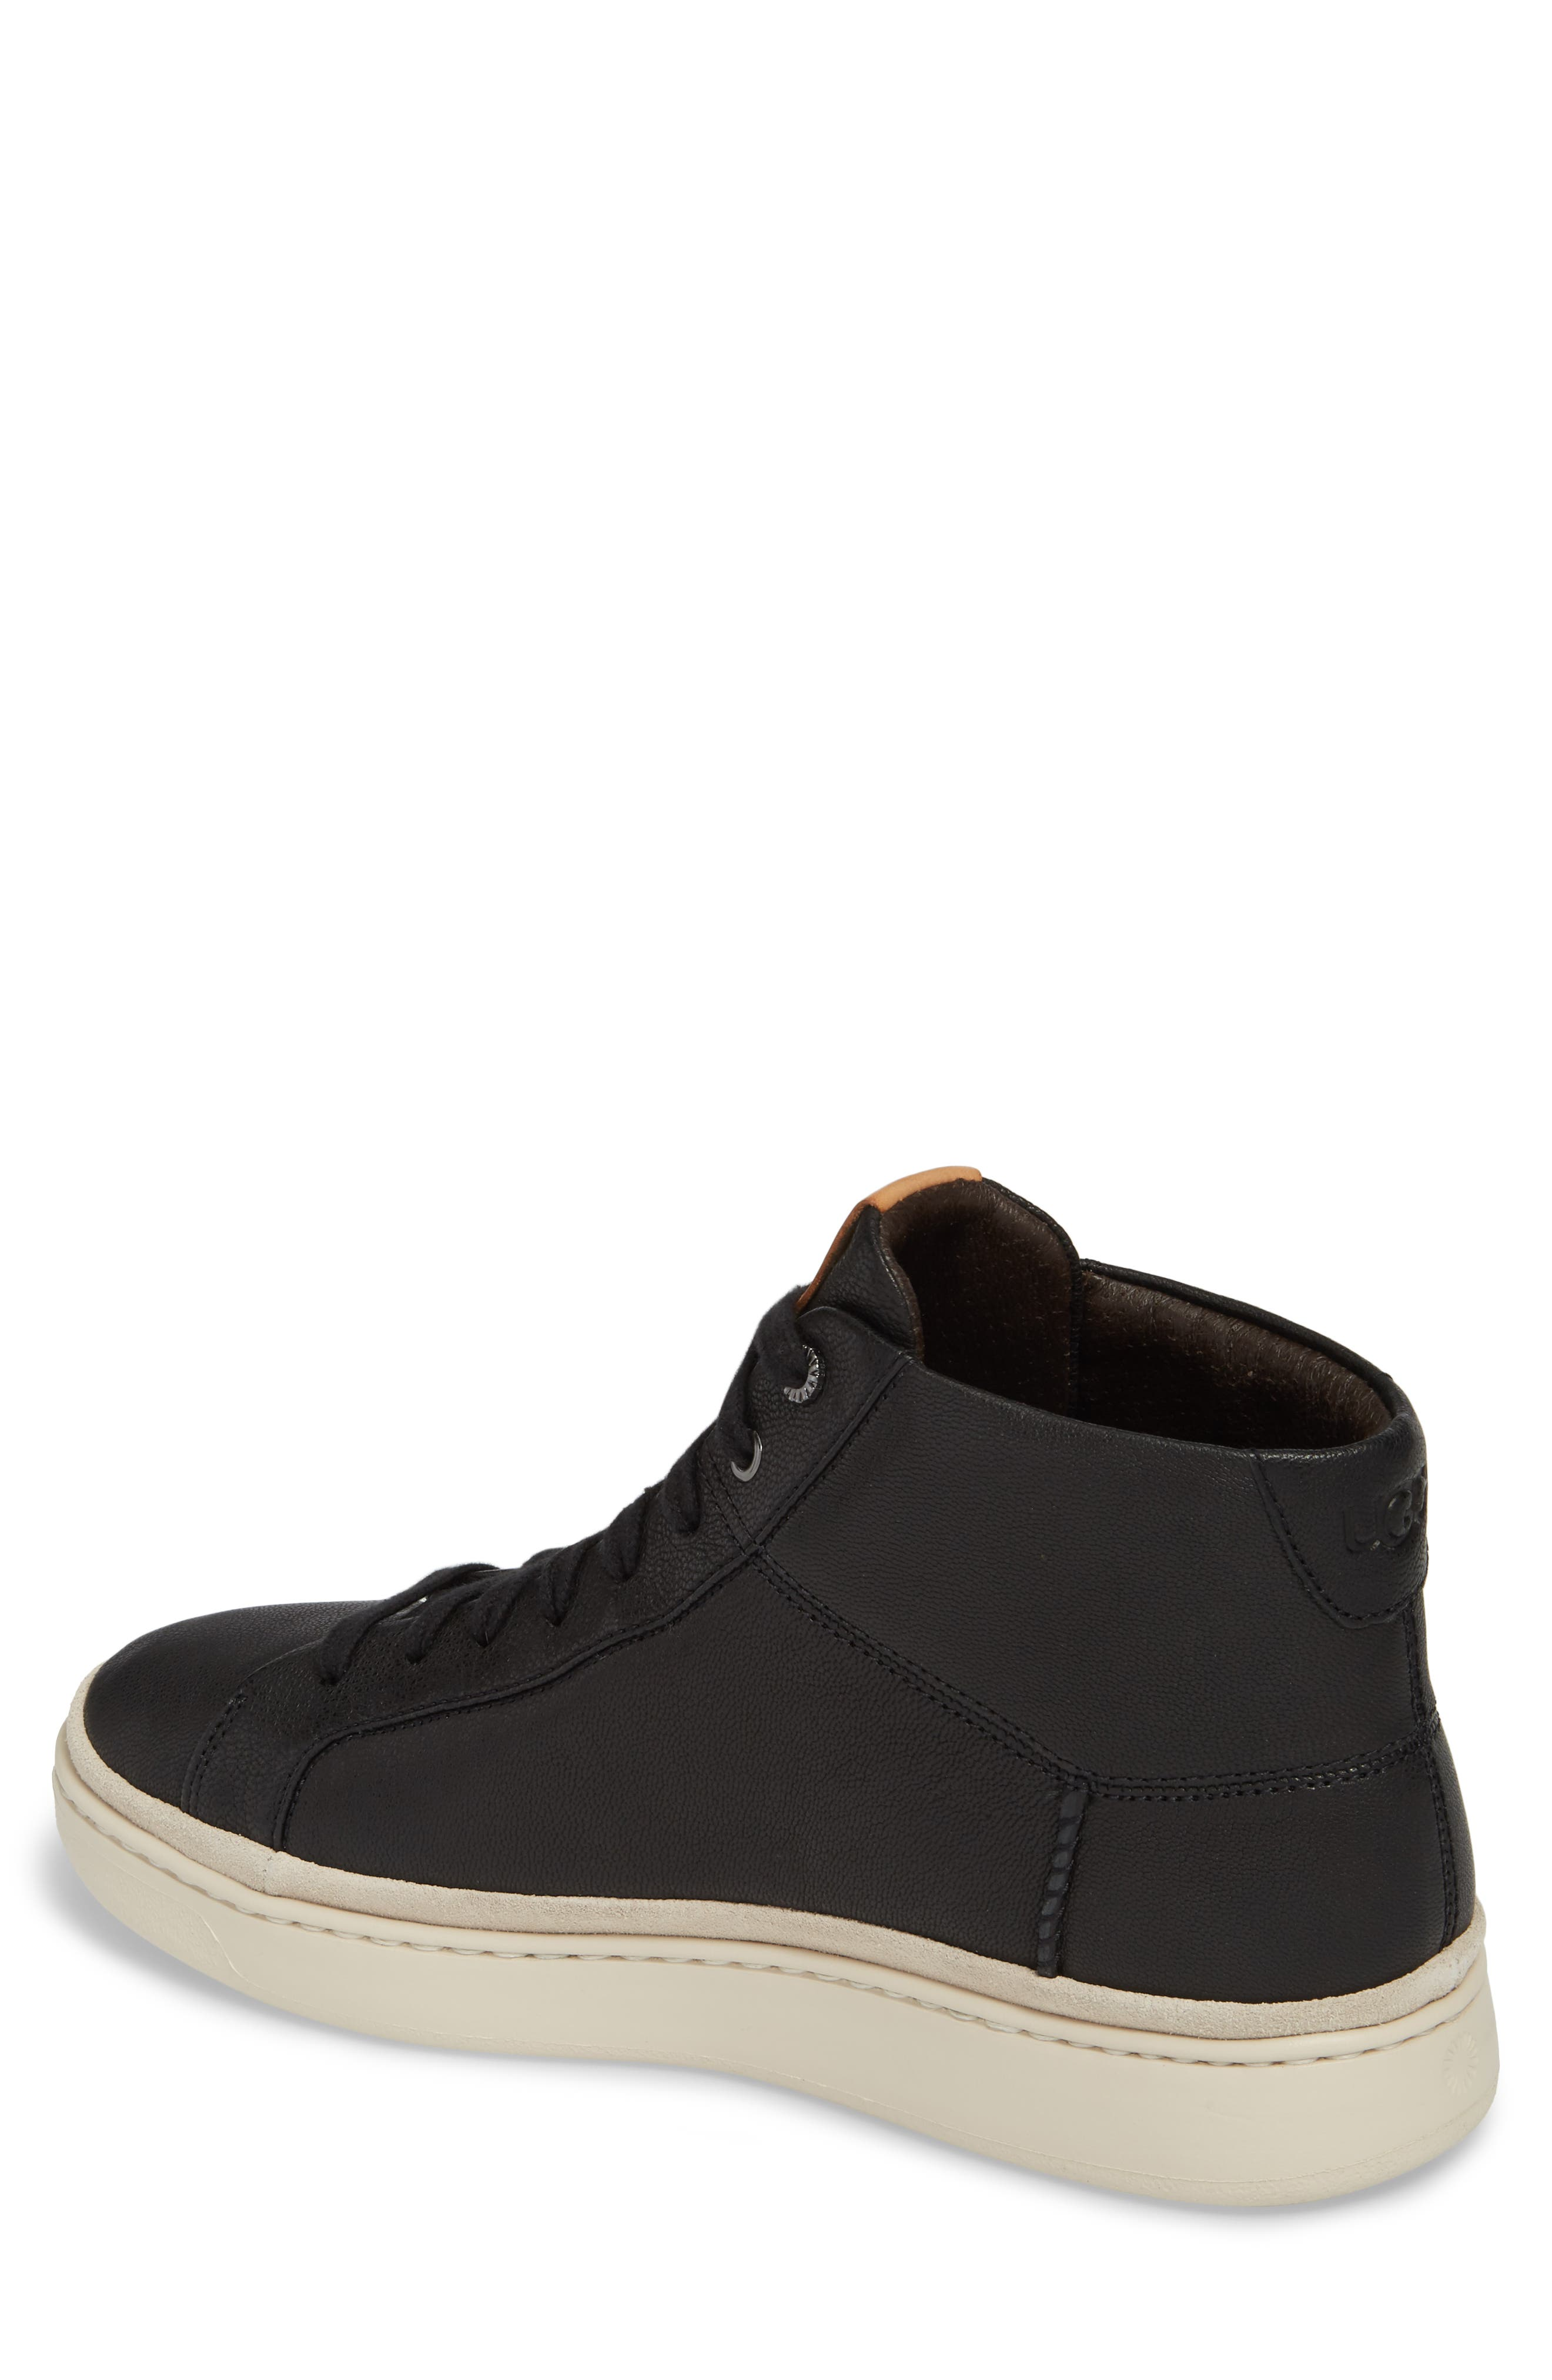 UGG<SUP>®</SUP>, Cali High Top Sneaker, Alternate thumbnail 2, color, BLACK LEATHER